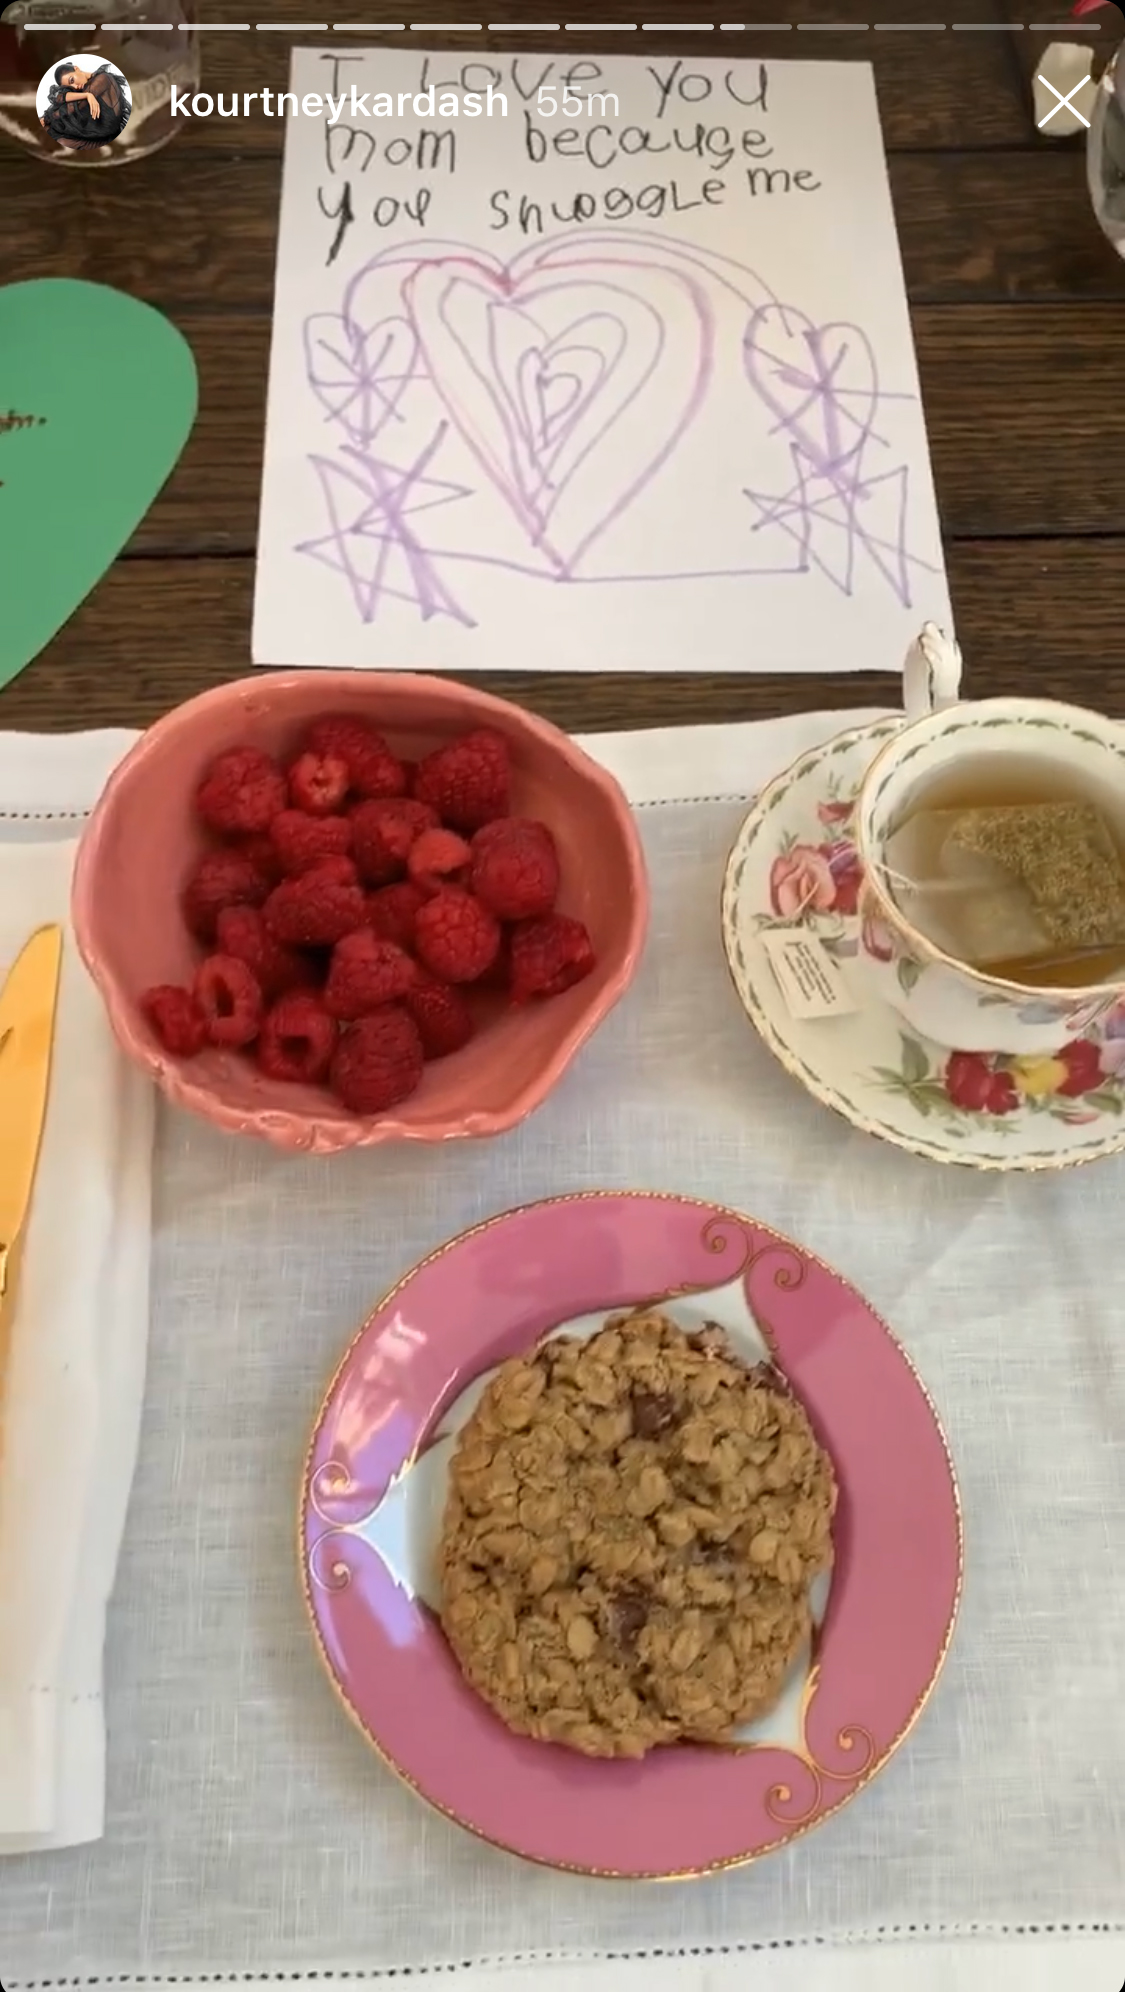 Mothers' Day Meals - When the Poosh founder woke up on Mother's Day, she was treated to a sweet breakfast from her three kids – Mason, 9, Penelope, 6, and Reign, 4. The trio prepared a cup of tea, some granola and fresh raspberries for their hard-working mom.